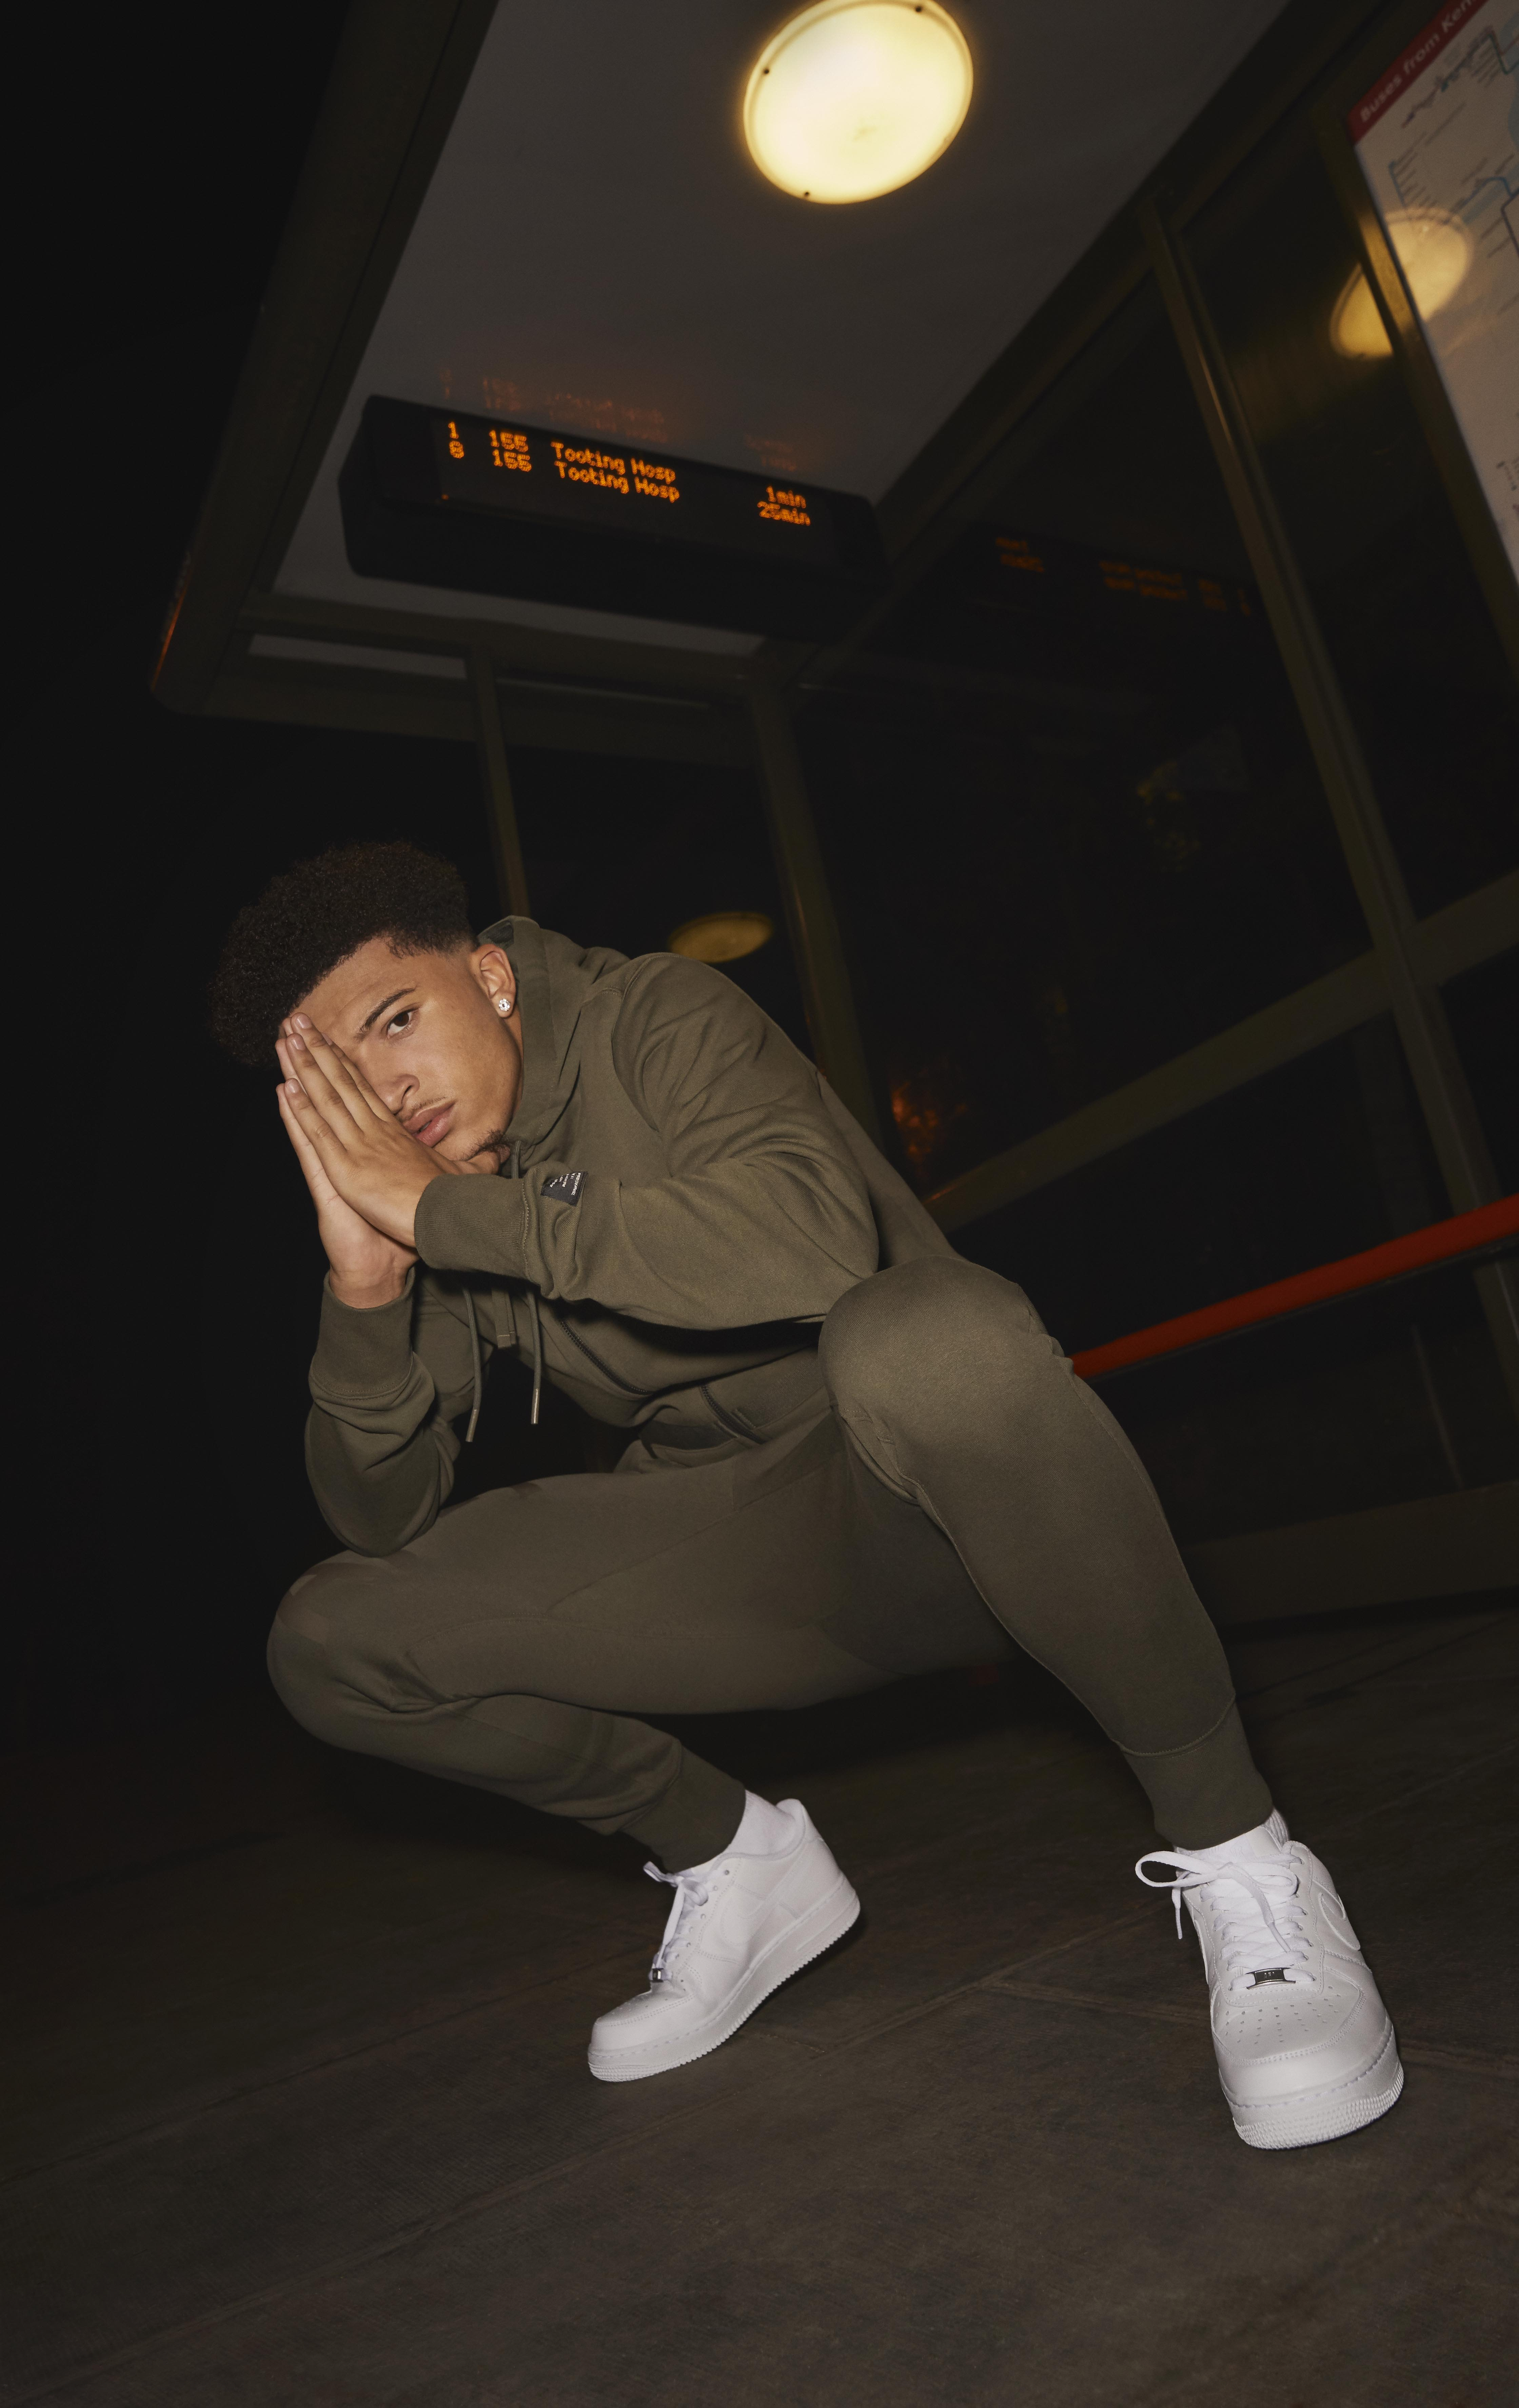 Aj Tracey  Little Simz And More Share Their Perspectives On The Nike Air Force 1 U0026 39 S London Legacy